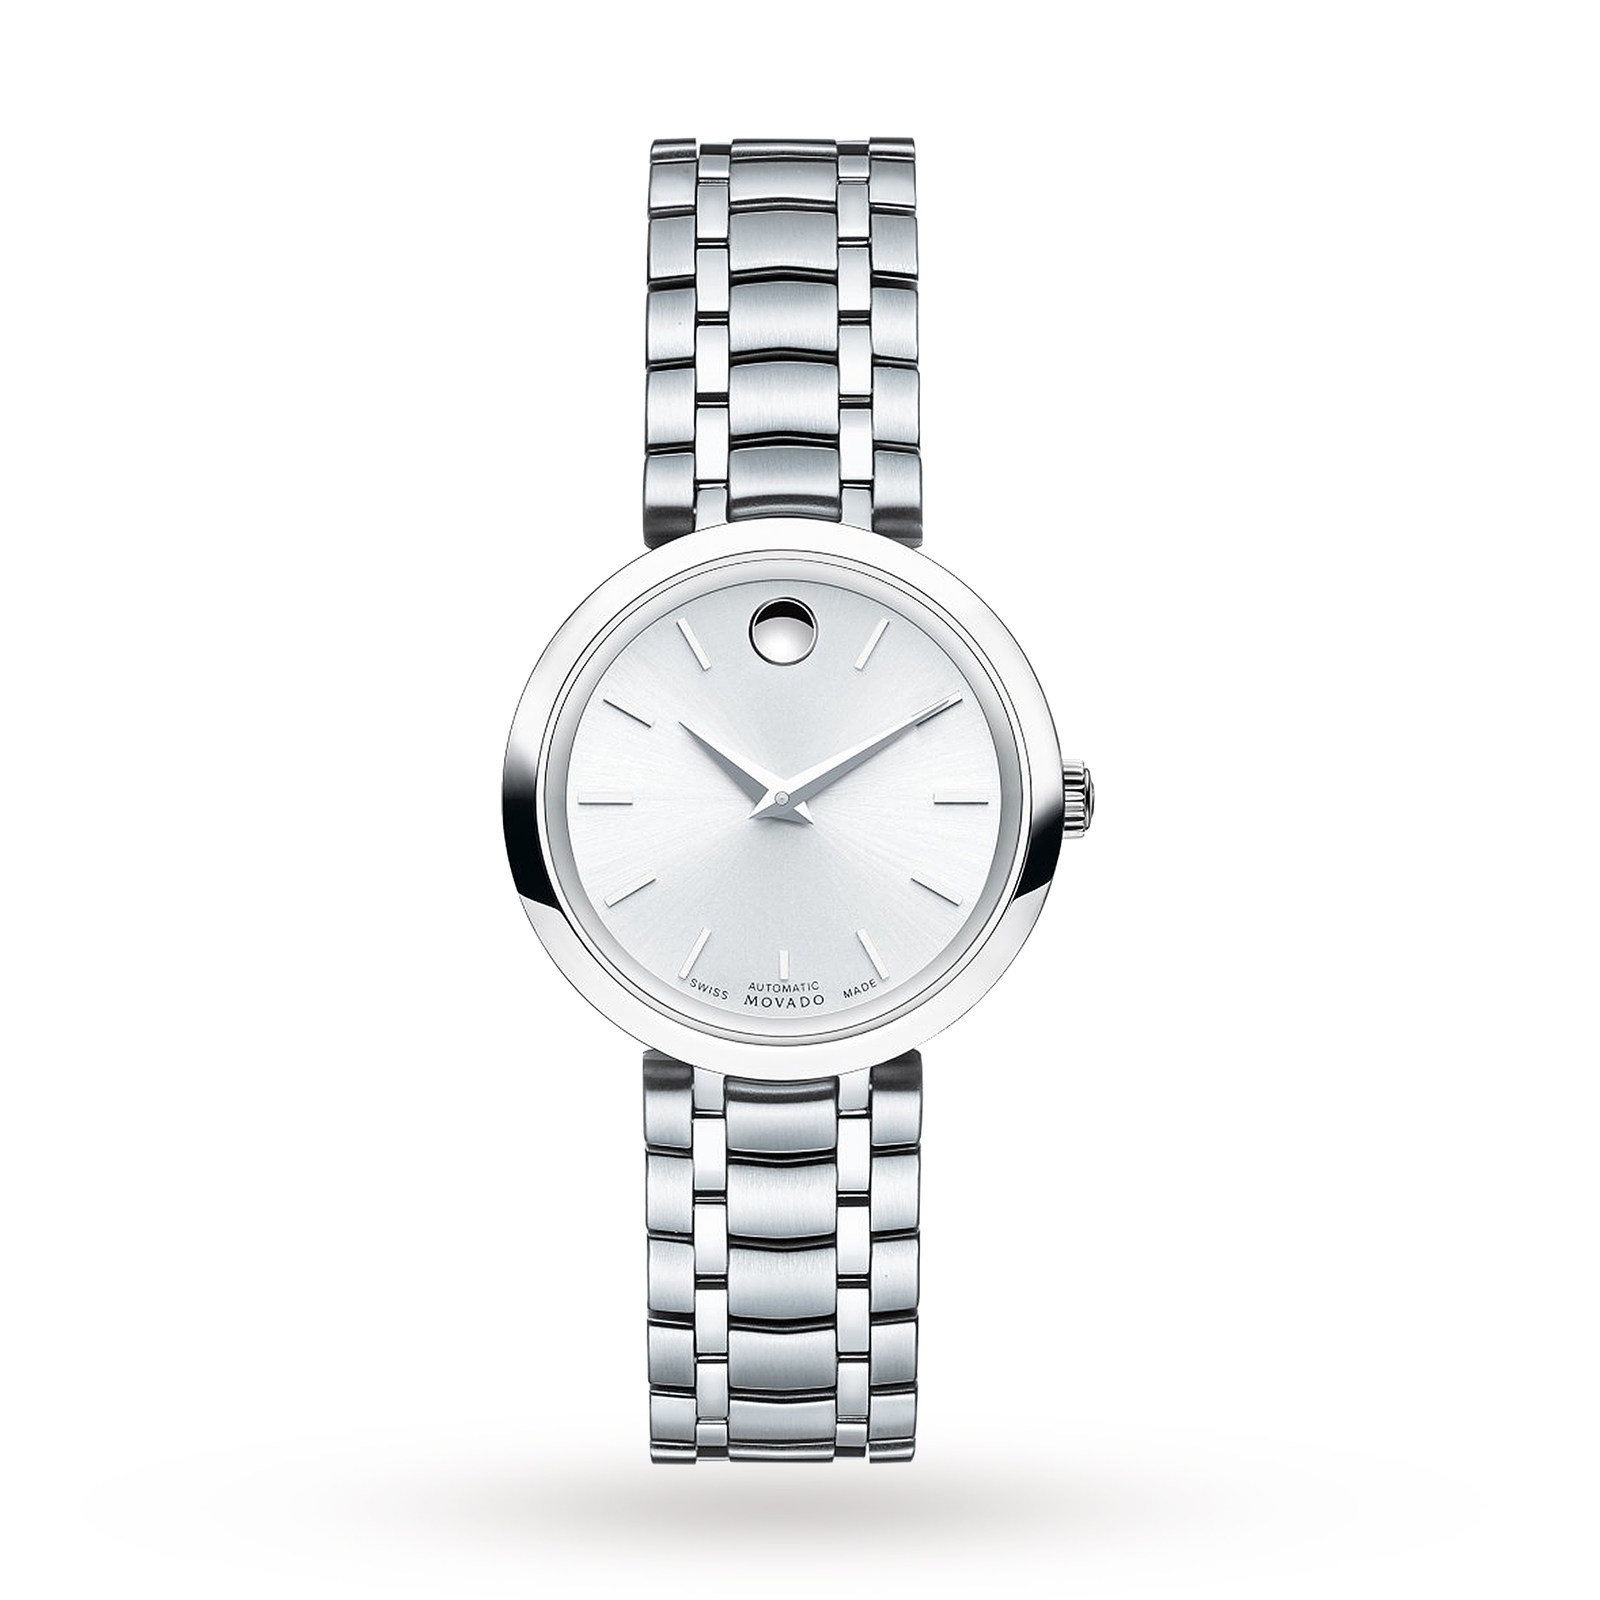 Movado Ladies' 1881 Automatic Watch